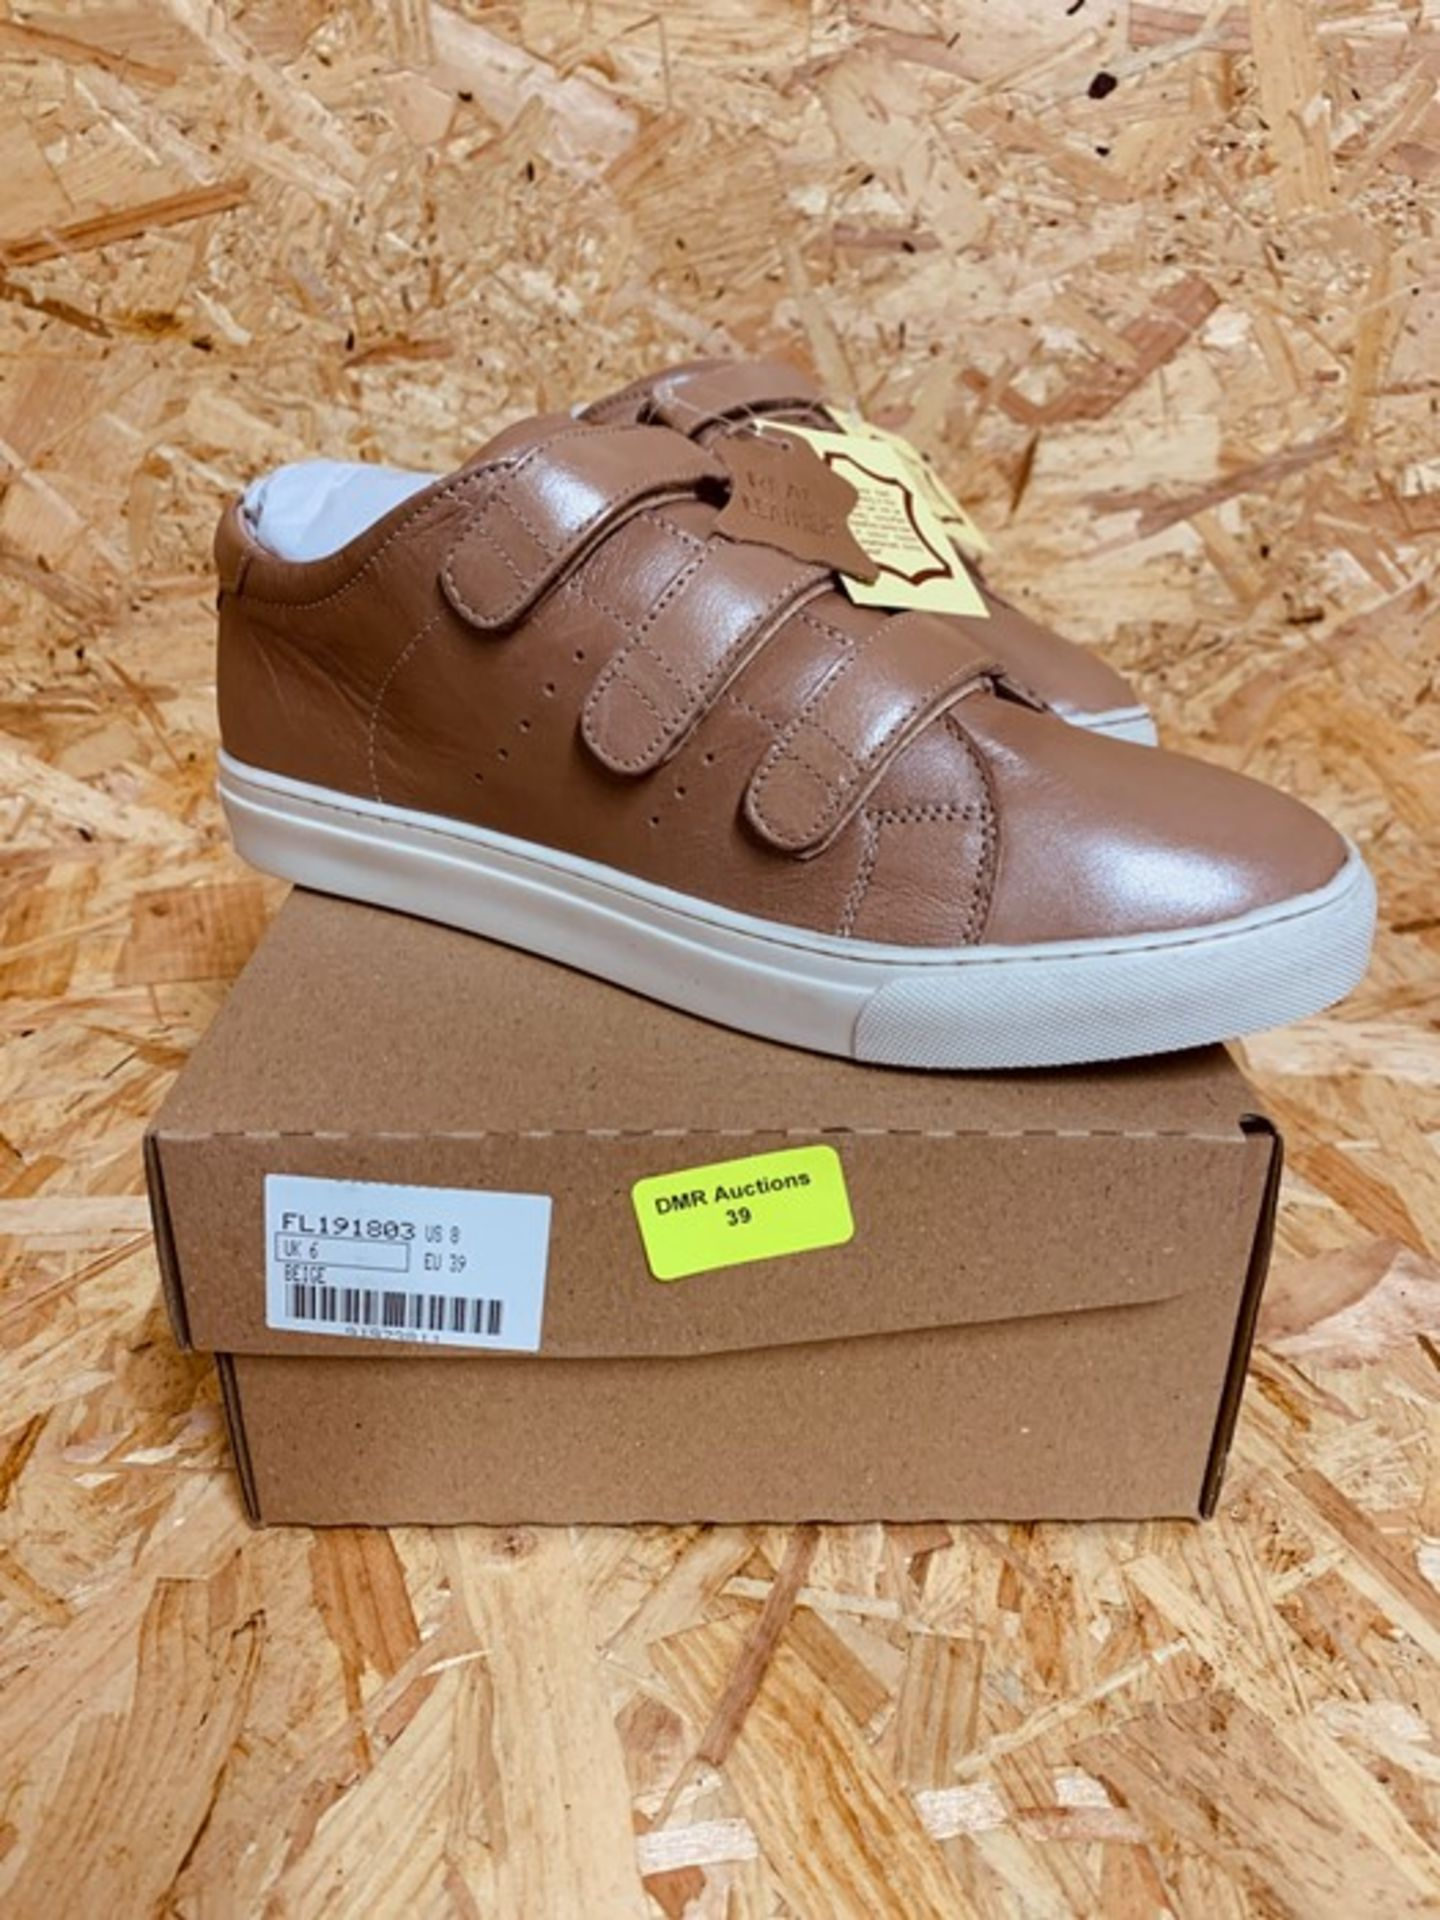 HEAVENLY SOLES LADIES LEATHER SNEAKERS - UK SIZE 6/BEIGE